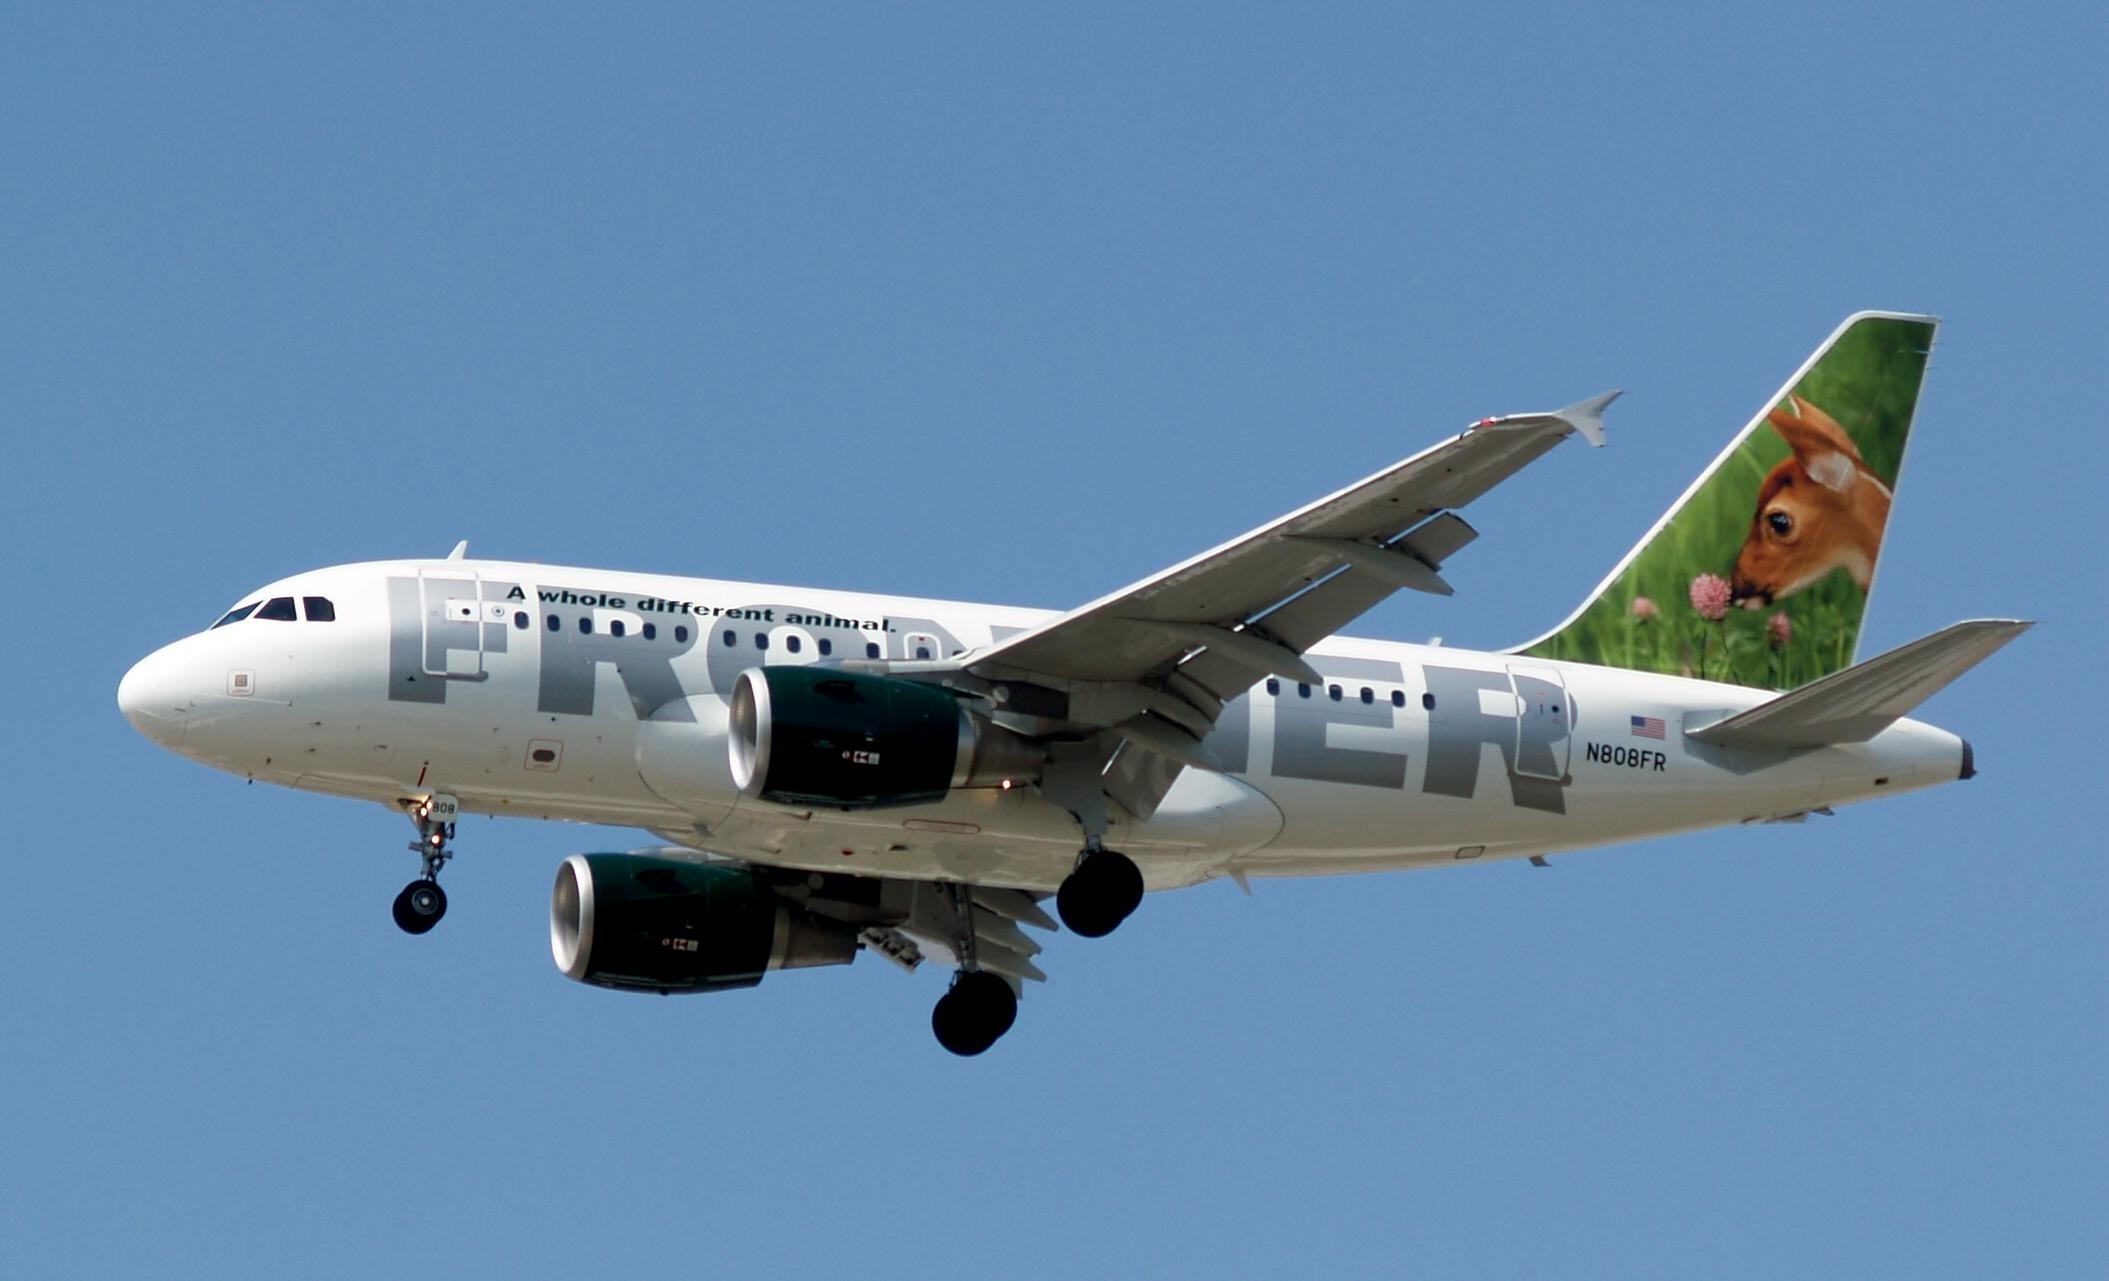 Frontier Airlines will now be flying to eight cities from T.F. Green Airport in Warwick, following Tuesday's announcement.